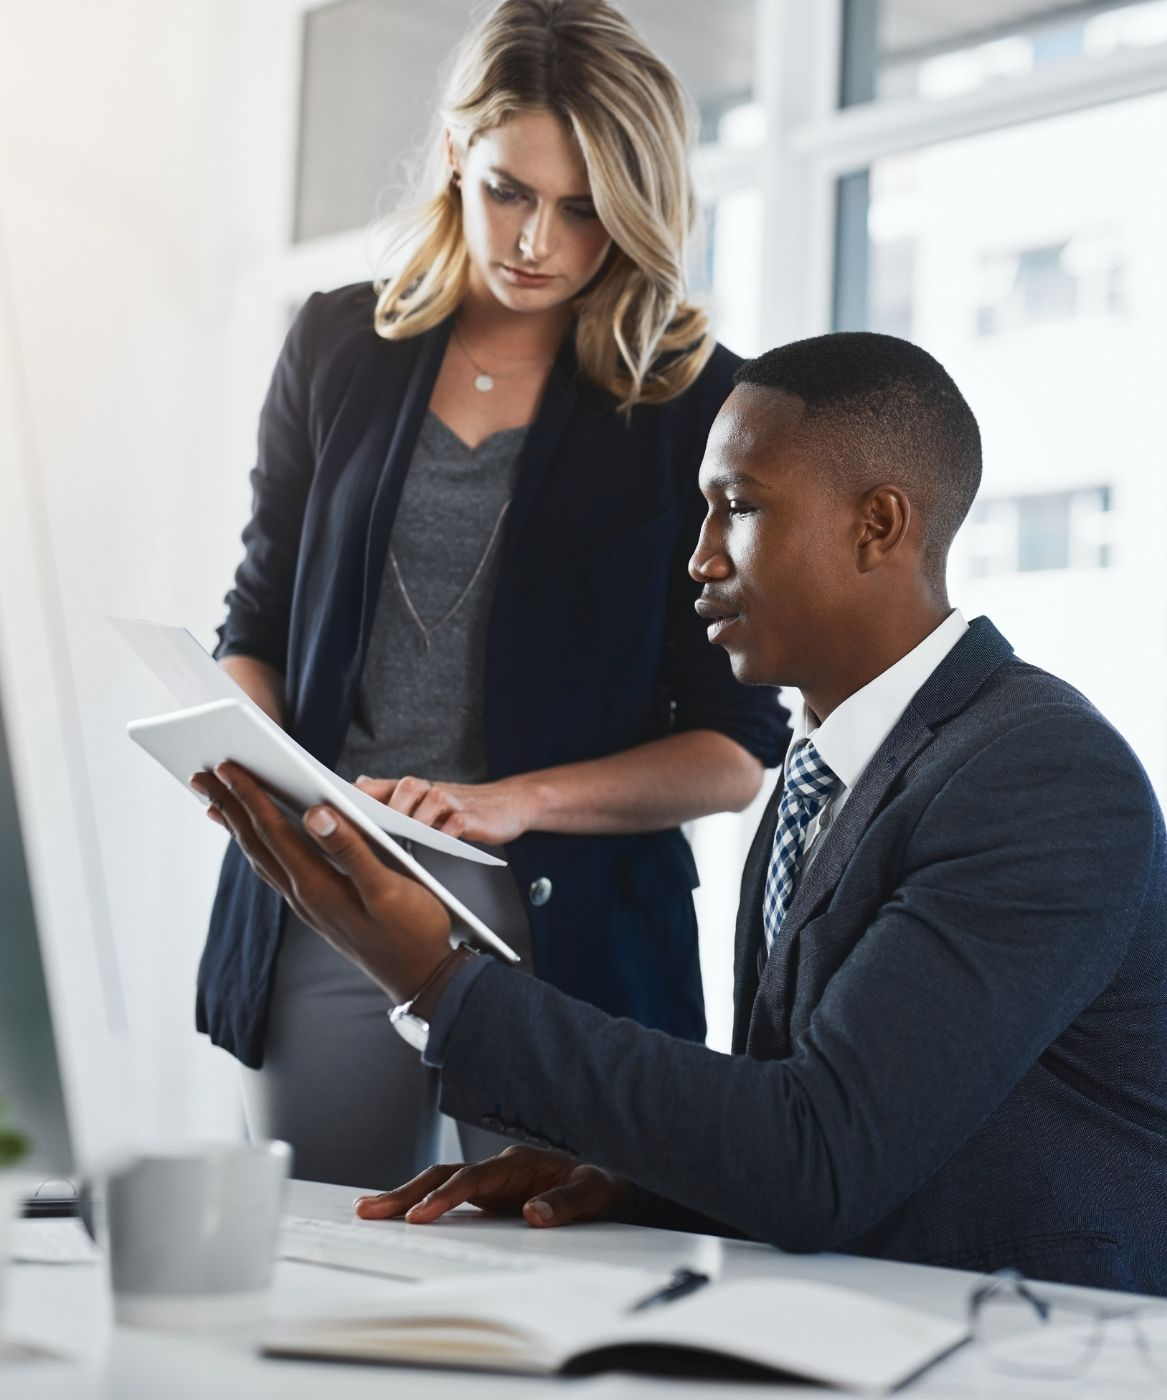 A business man and woman looking at a report.